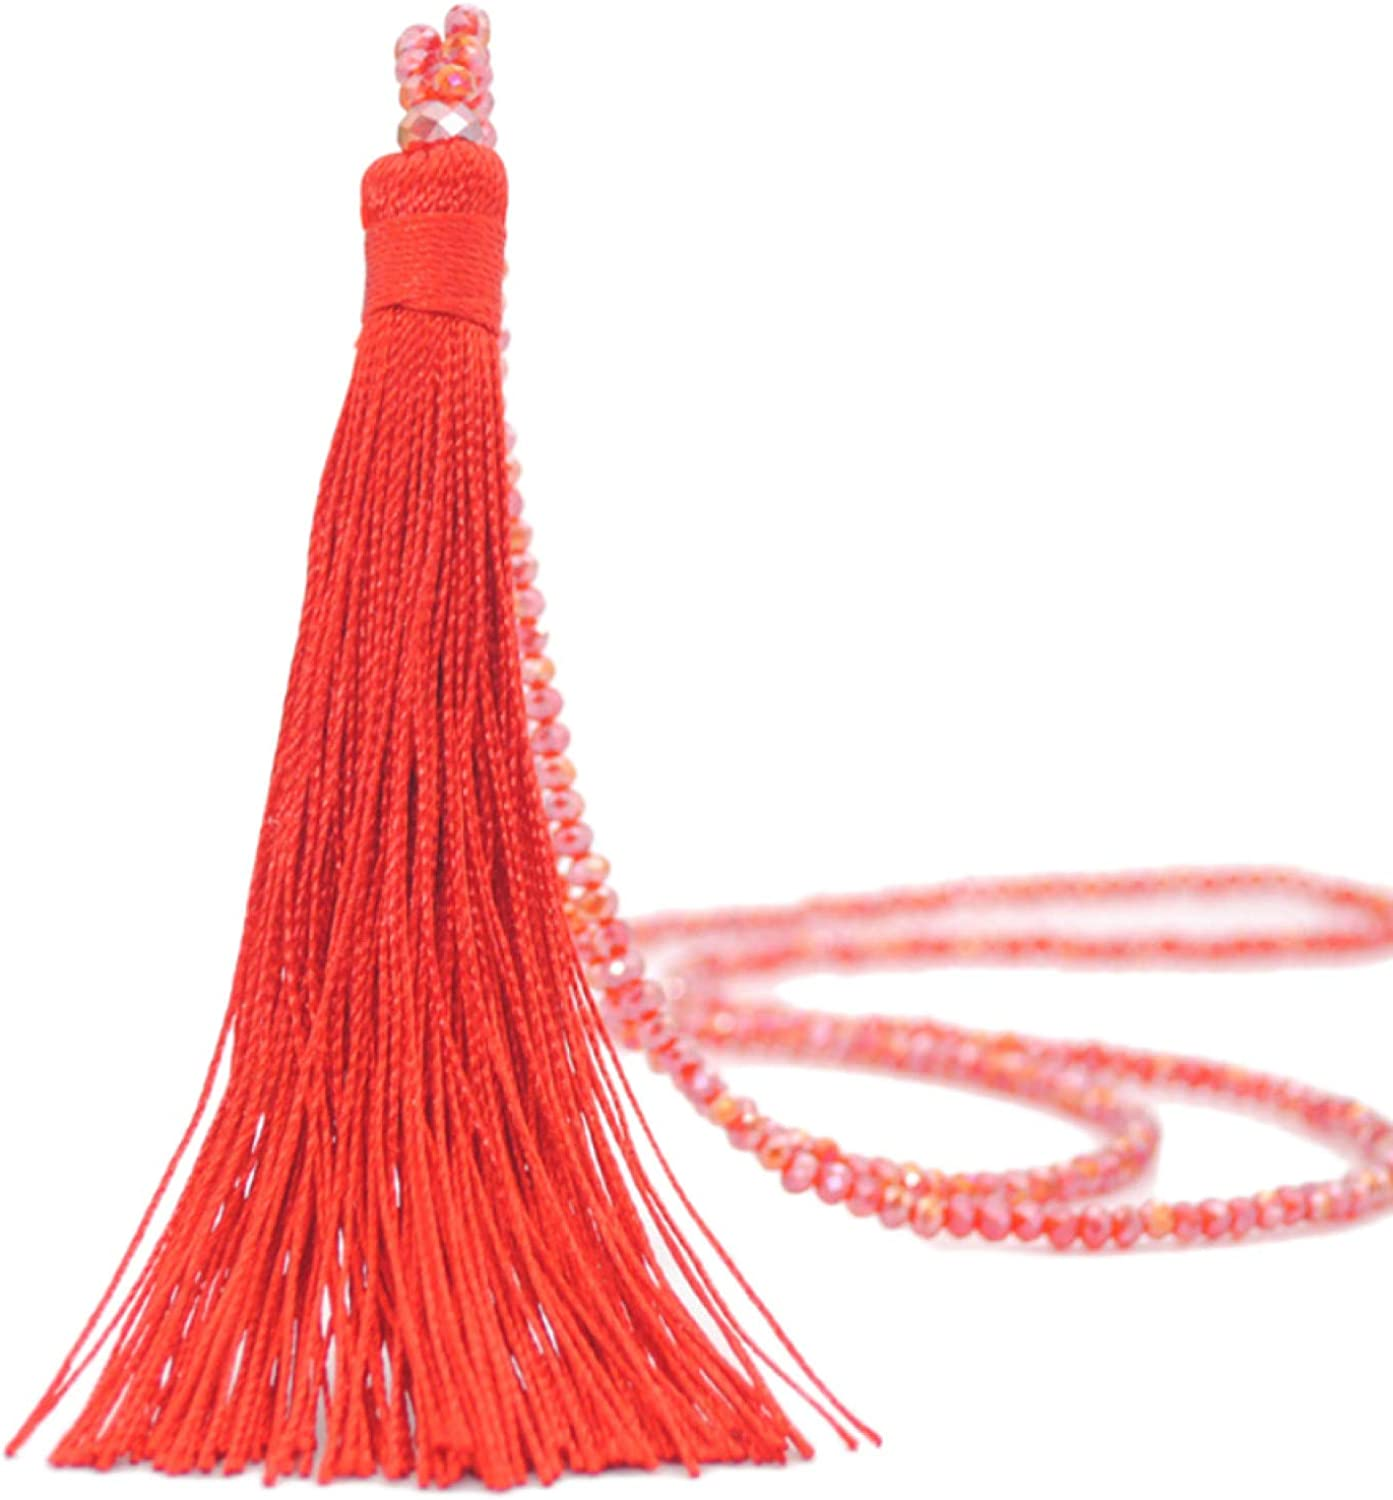 Necklaces for Women,Fashion Women Tassel Pendant Faux Crystal Beaded Long Necklace Jewelry Gift Gifts For Daughter/Her/Girls/Wife/Mom/Girlfriend